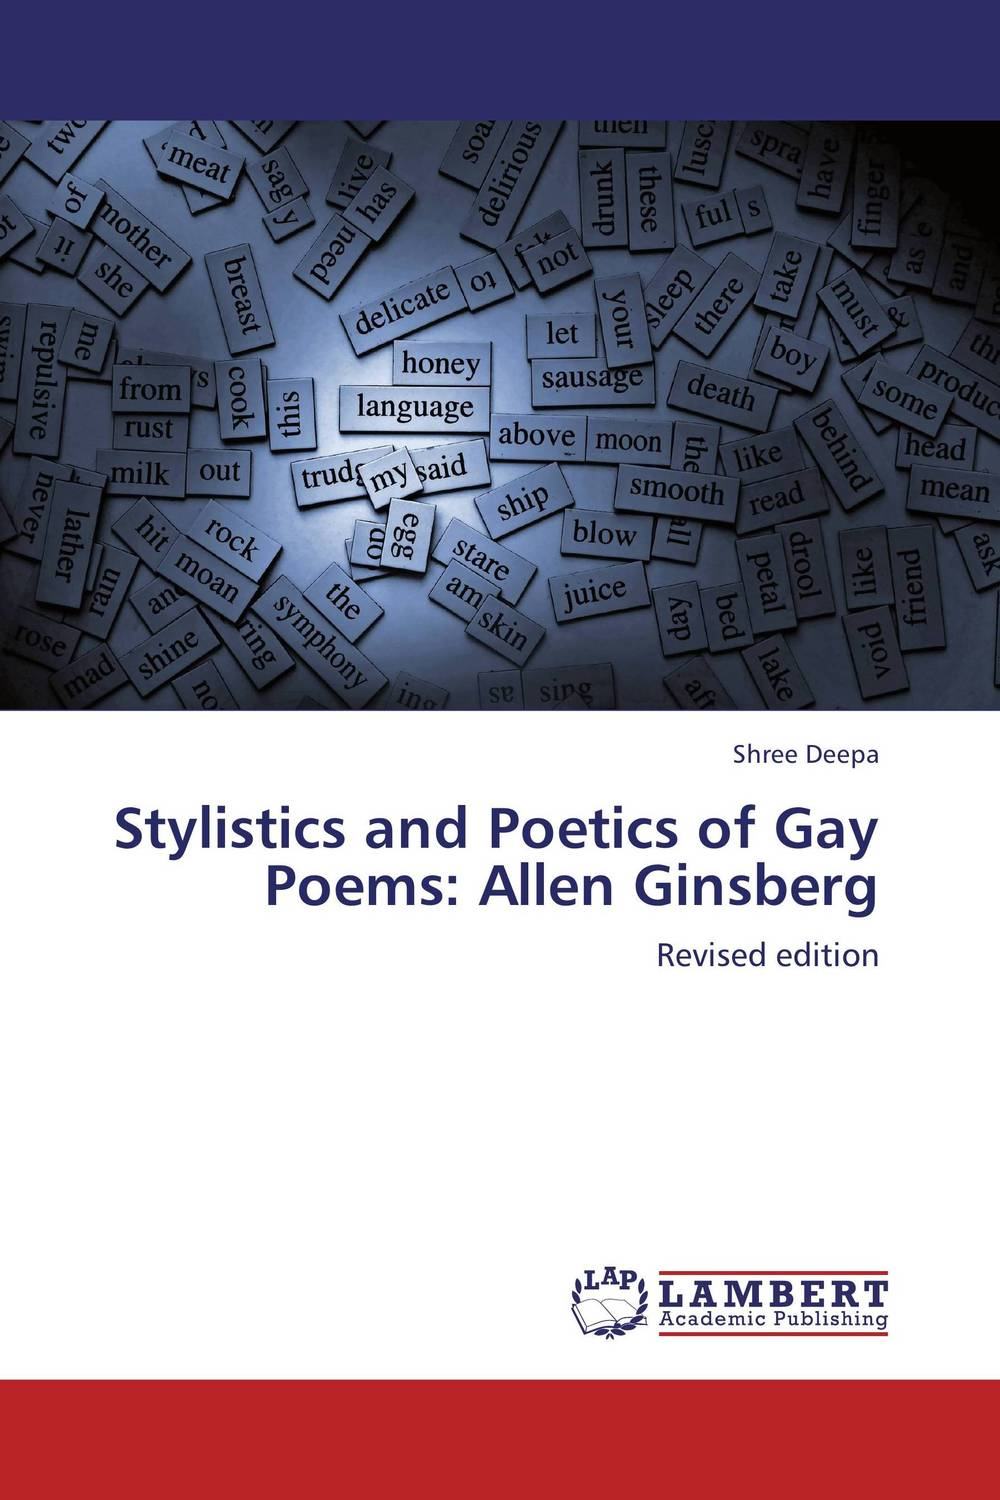 Stylistics and Poetics of Gay Poems: Allen Ginsberg